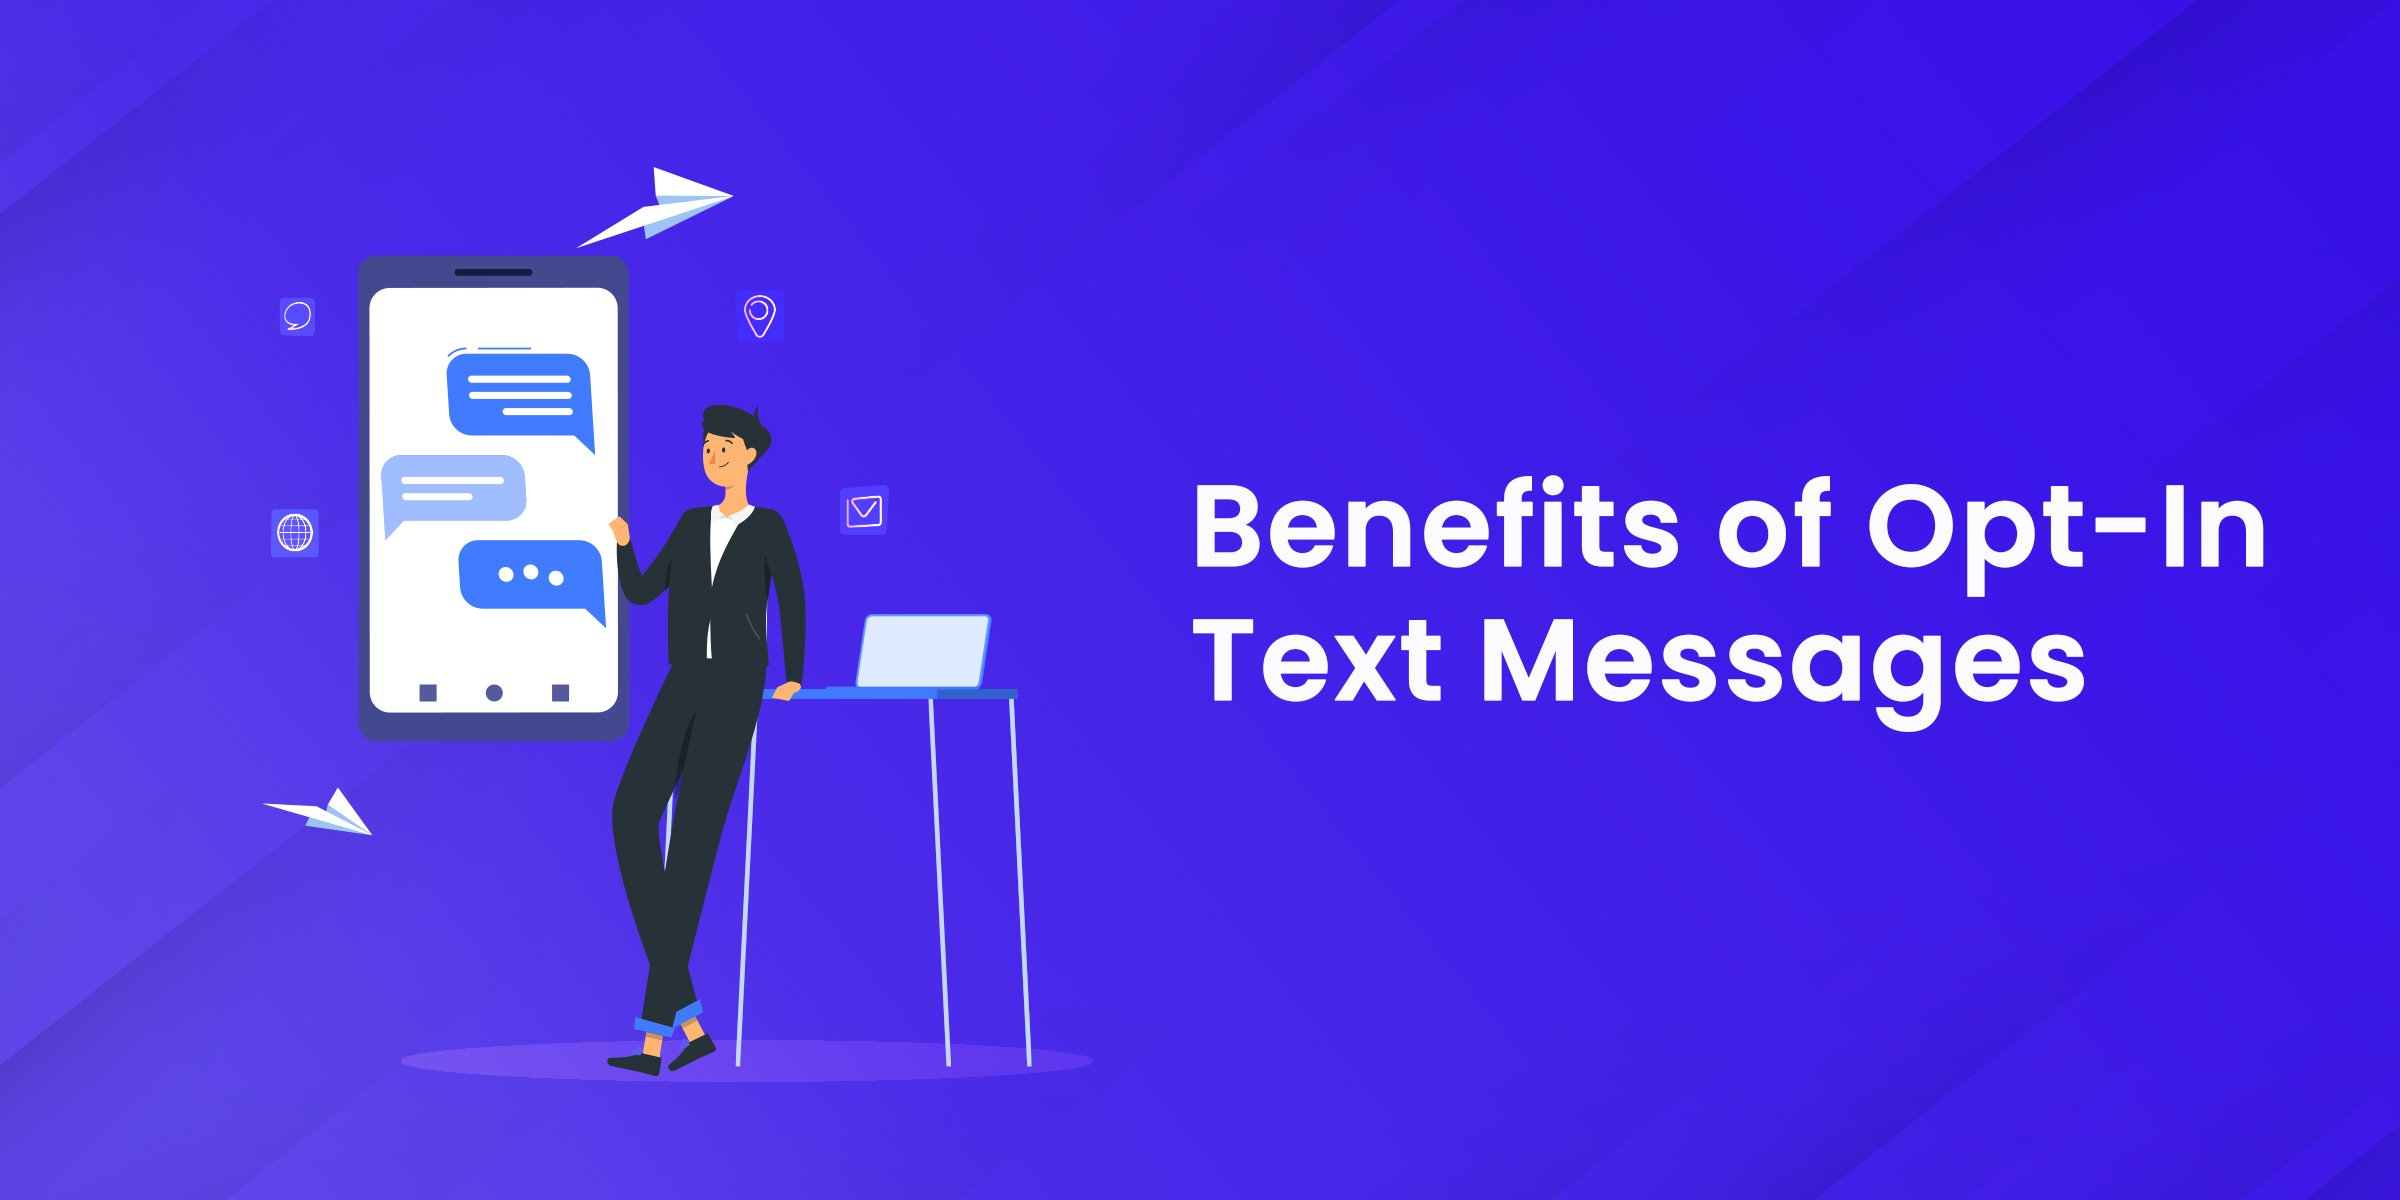 Benefits of Opt-in Text Messages